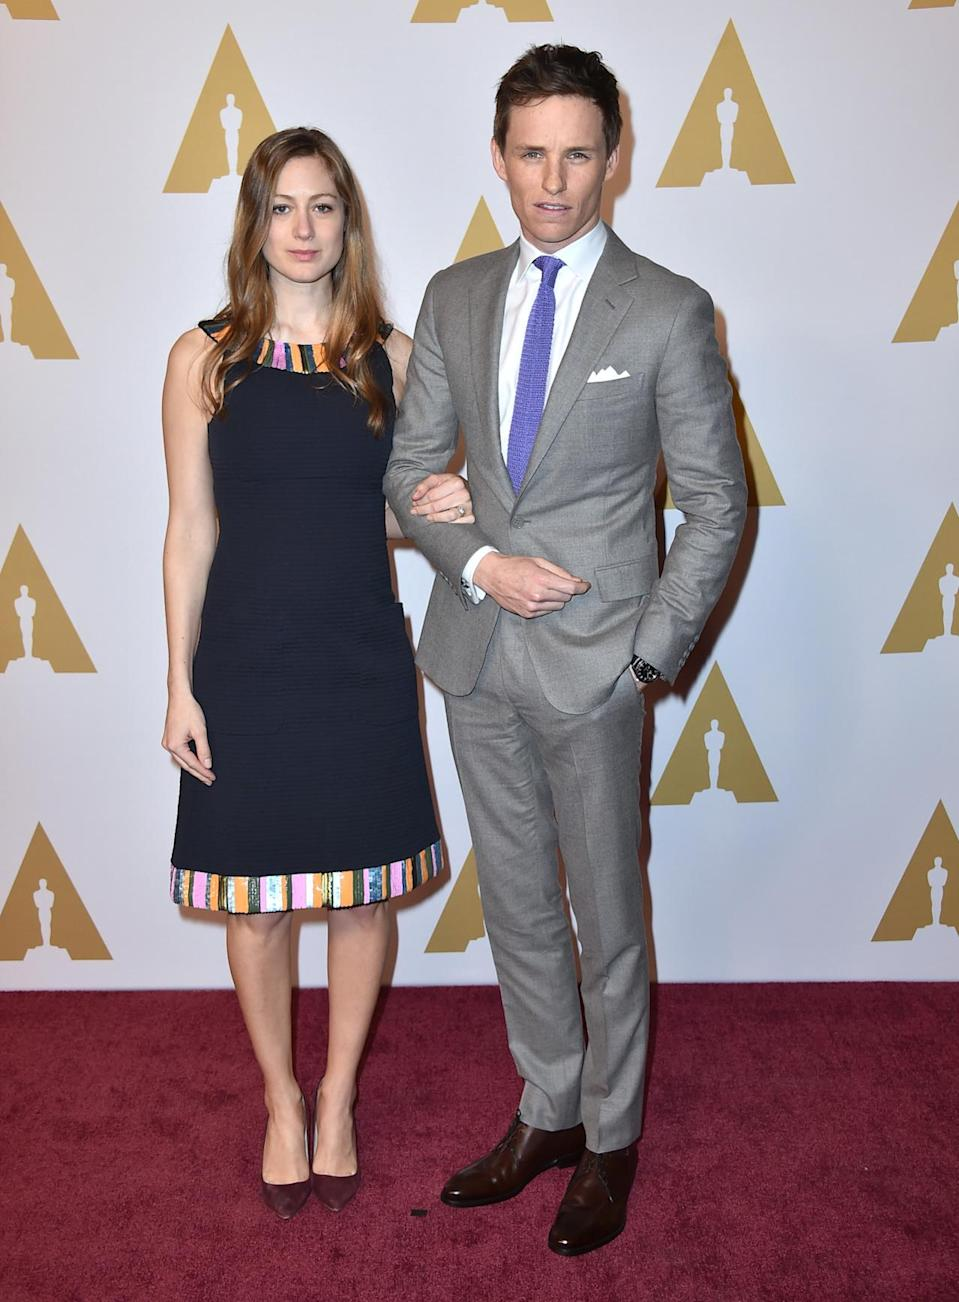 """<p>""""It's an evening event and yet it seems to take such a long time,"""" laughed Redmayne said of the Oscars. """"I think it'll be a calm day. Hopefully it'll be sunny. Last year, it was pouring with rain. I keep promising Hannah whenever we come to LA that it's going to be sunnier. Hopefully it'll be sunny and we'll have a gentle day and try and relax and enjoy it. Rather than last year, I think I was a frenzy of nerves."""" Might he have a glass of Champagne to prepare? """"Yes! Several!"""" he concluded.</p><p><i>Photo: AP</i><br></p>"""